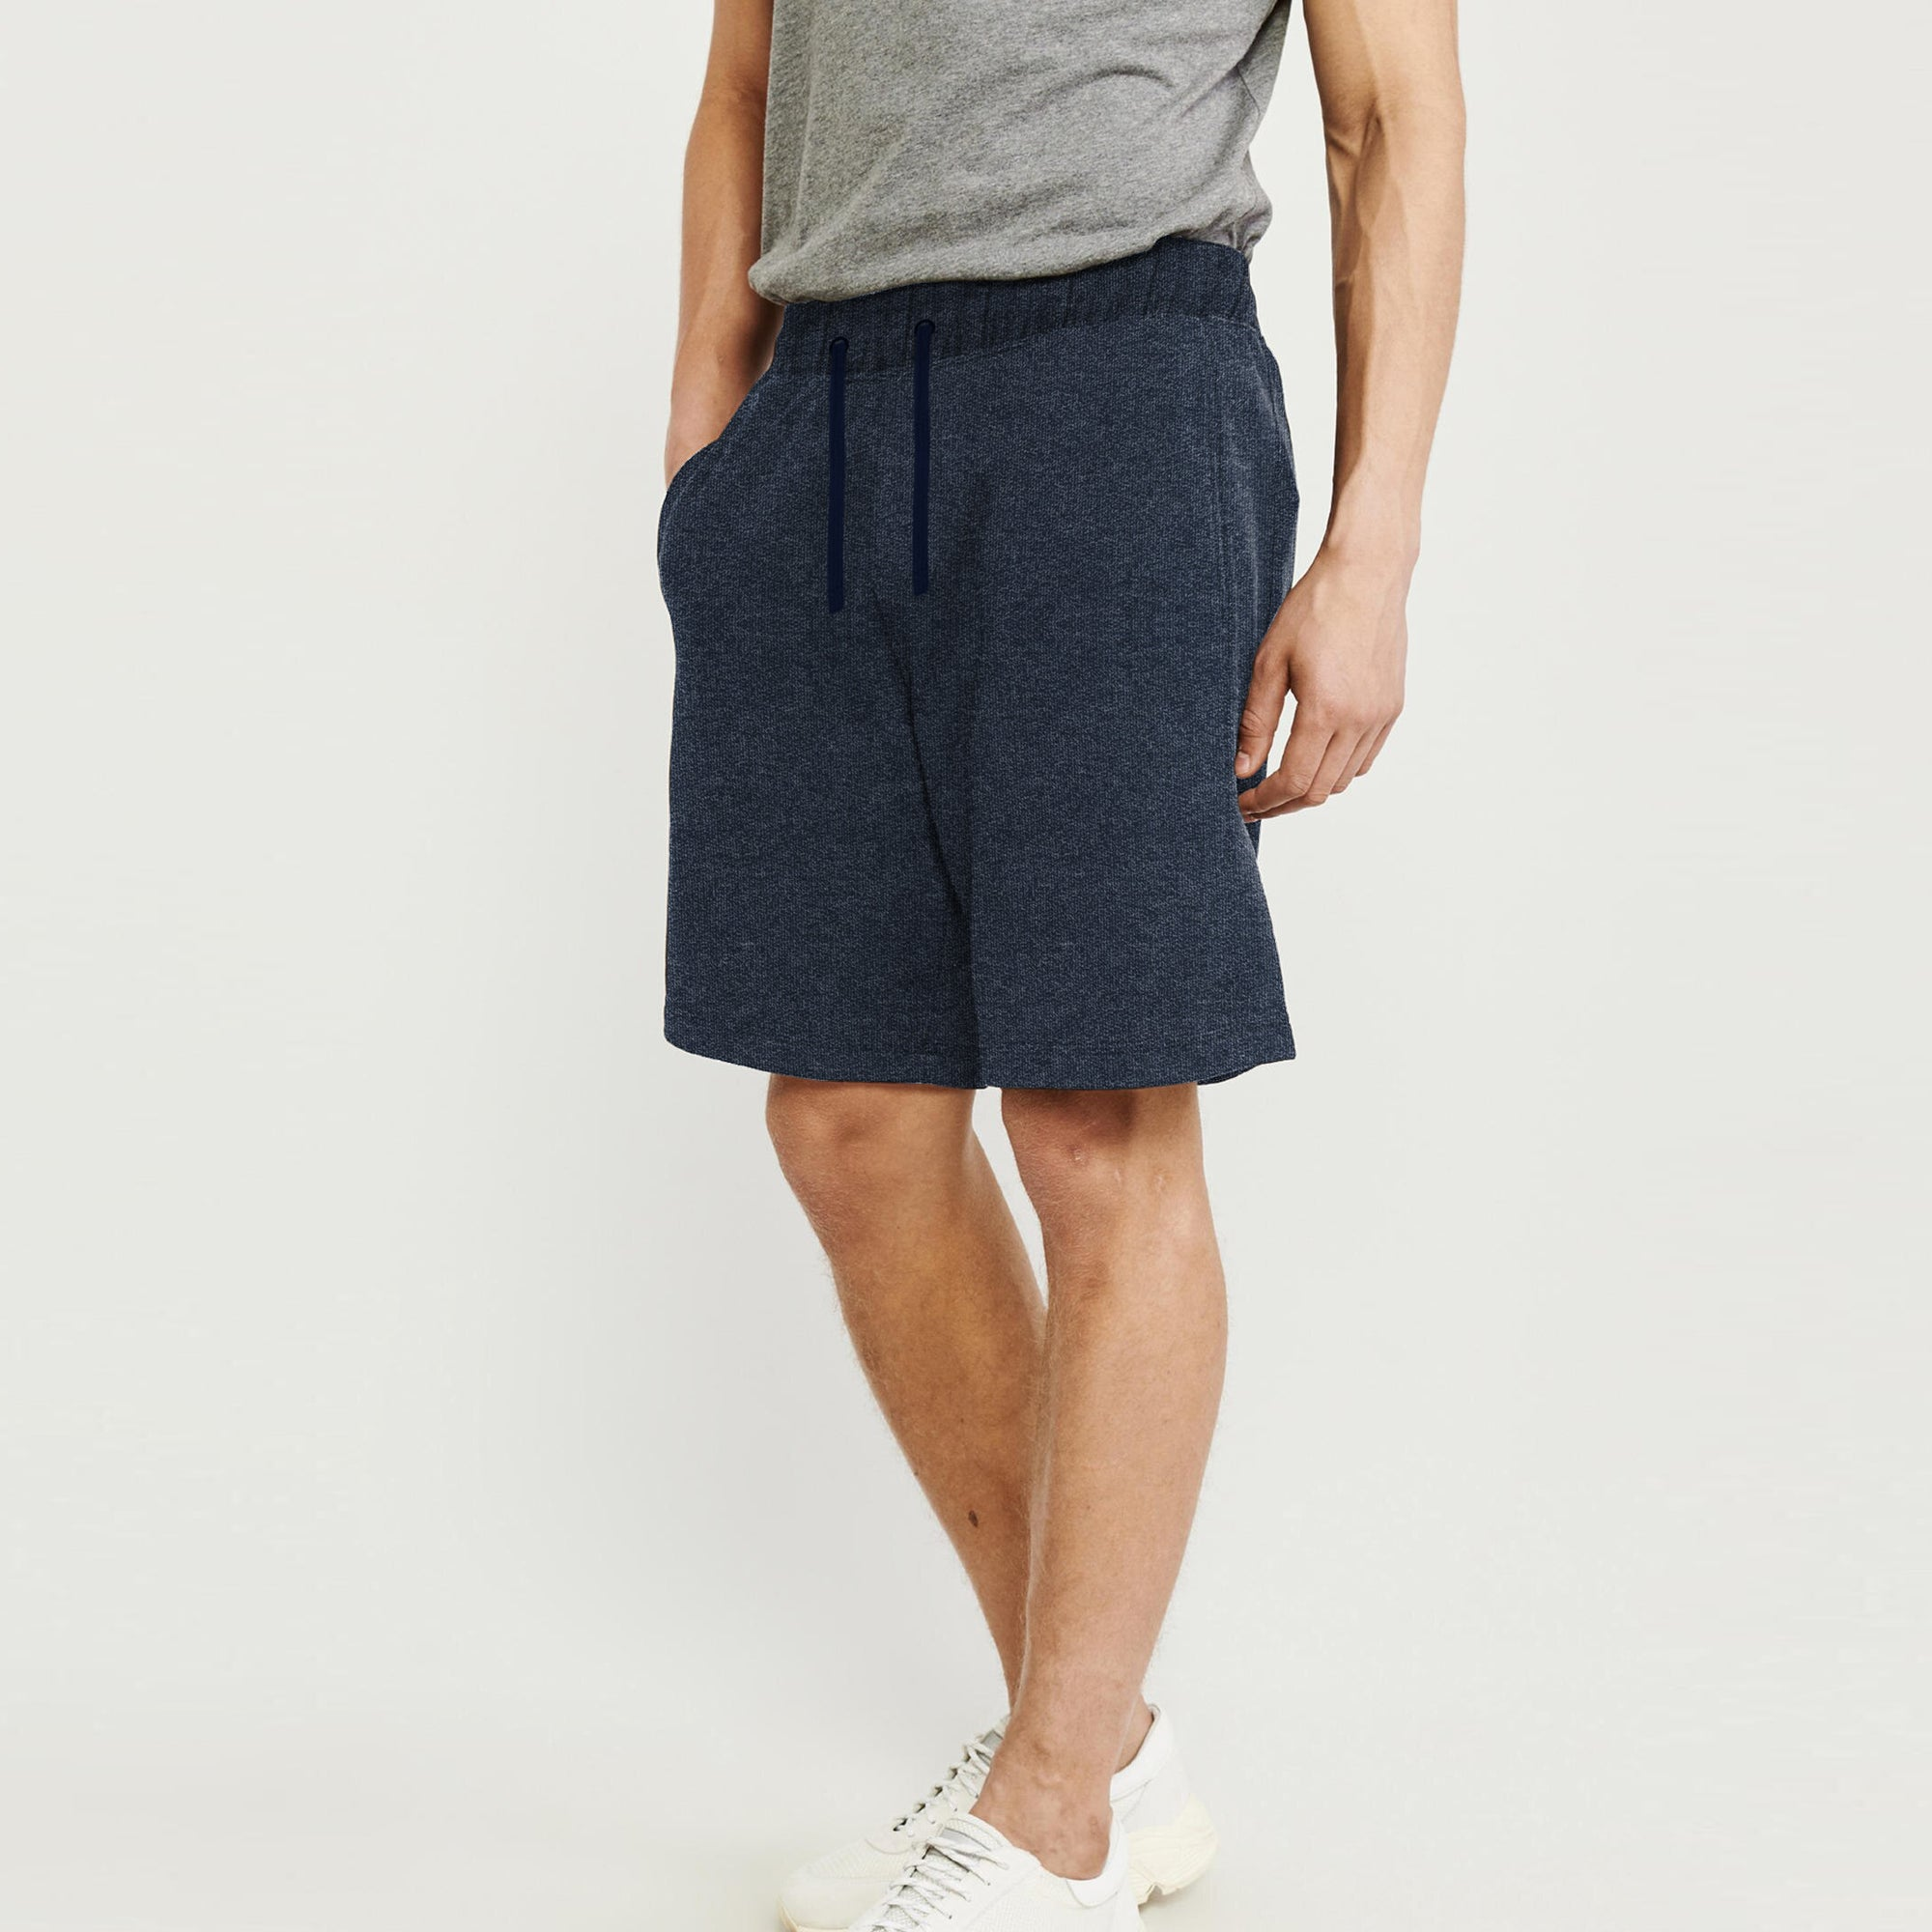 Next Terry Jersey Short For Men-Navy Melange-BE8820